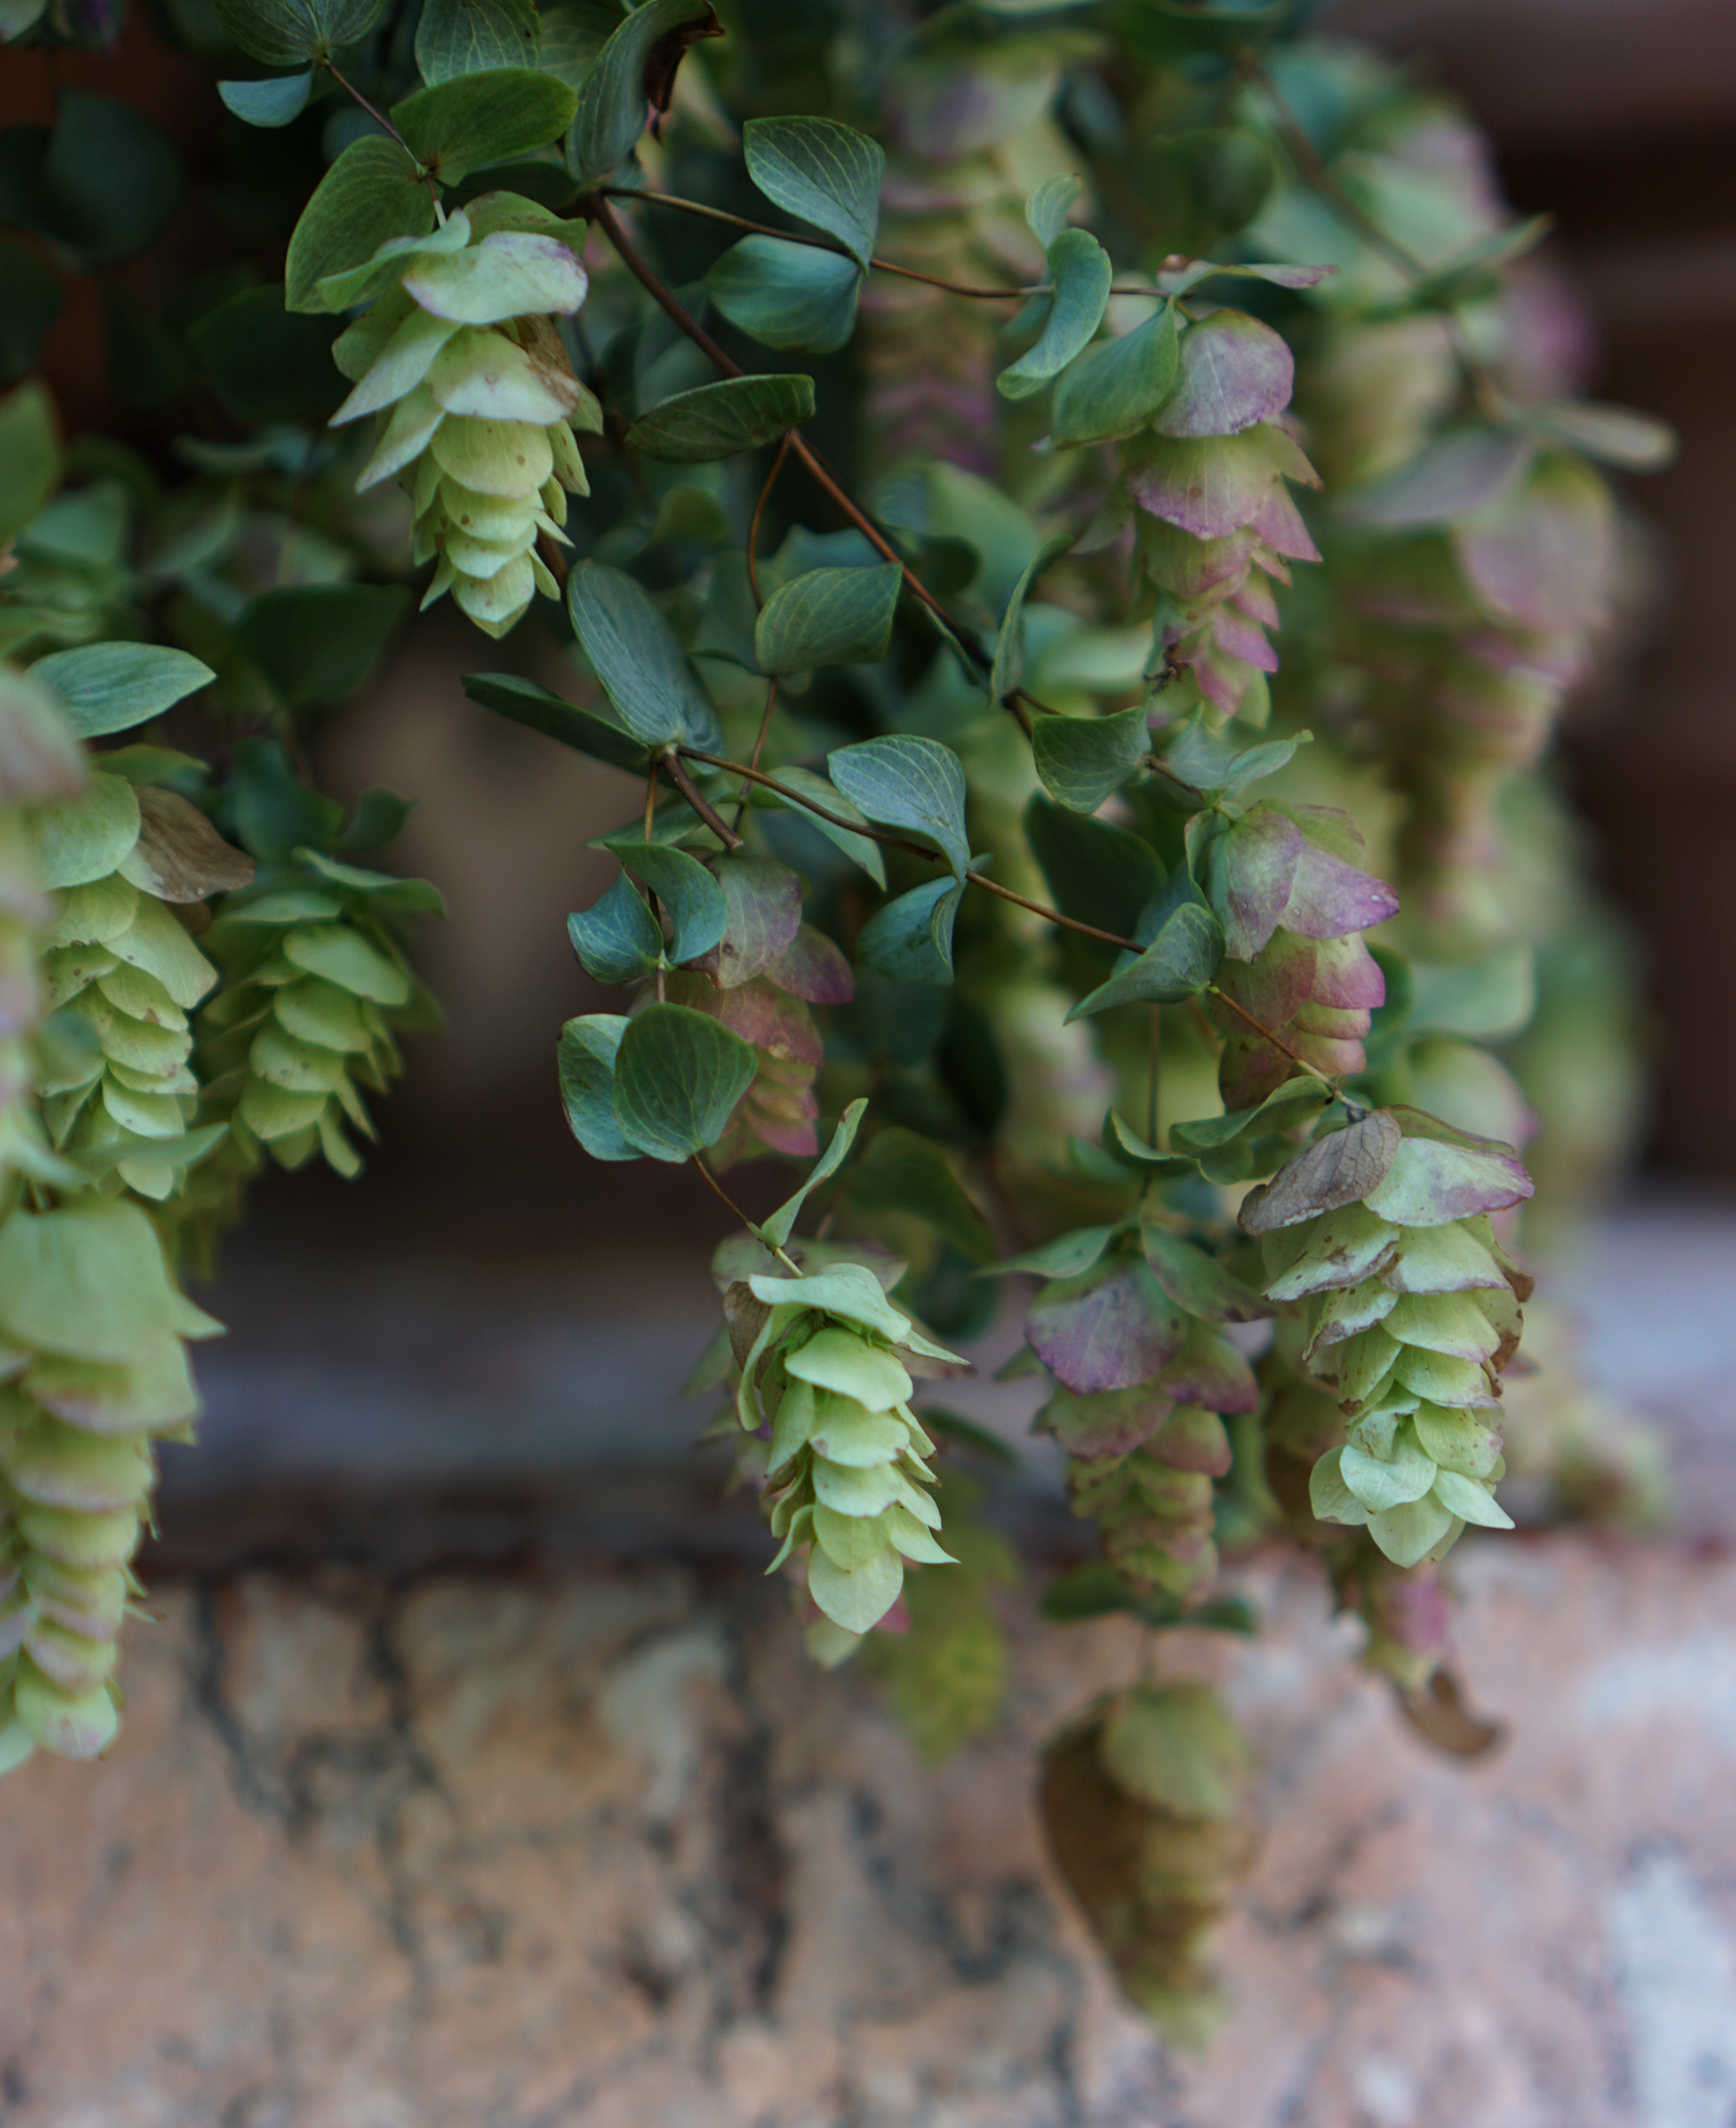 Hops in a garden at the Cloisters, New York City / Darker than Green